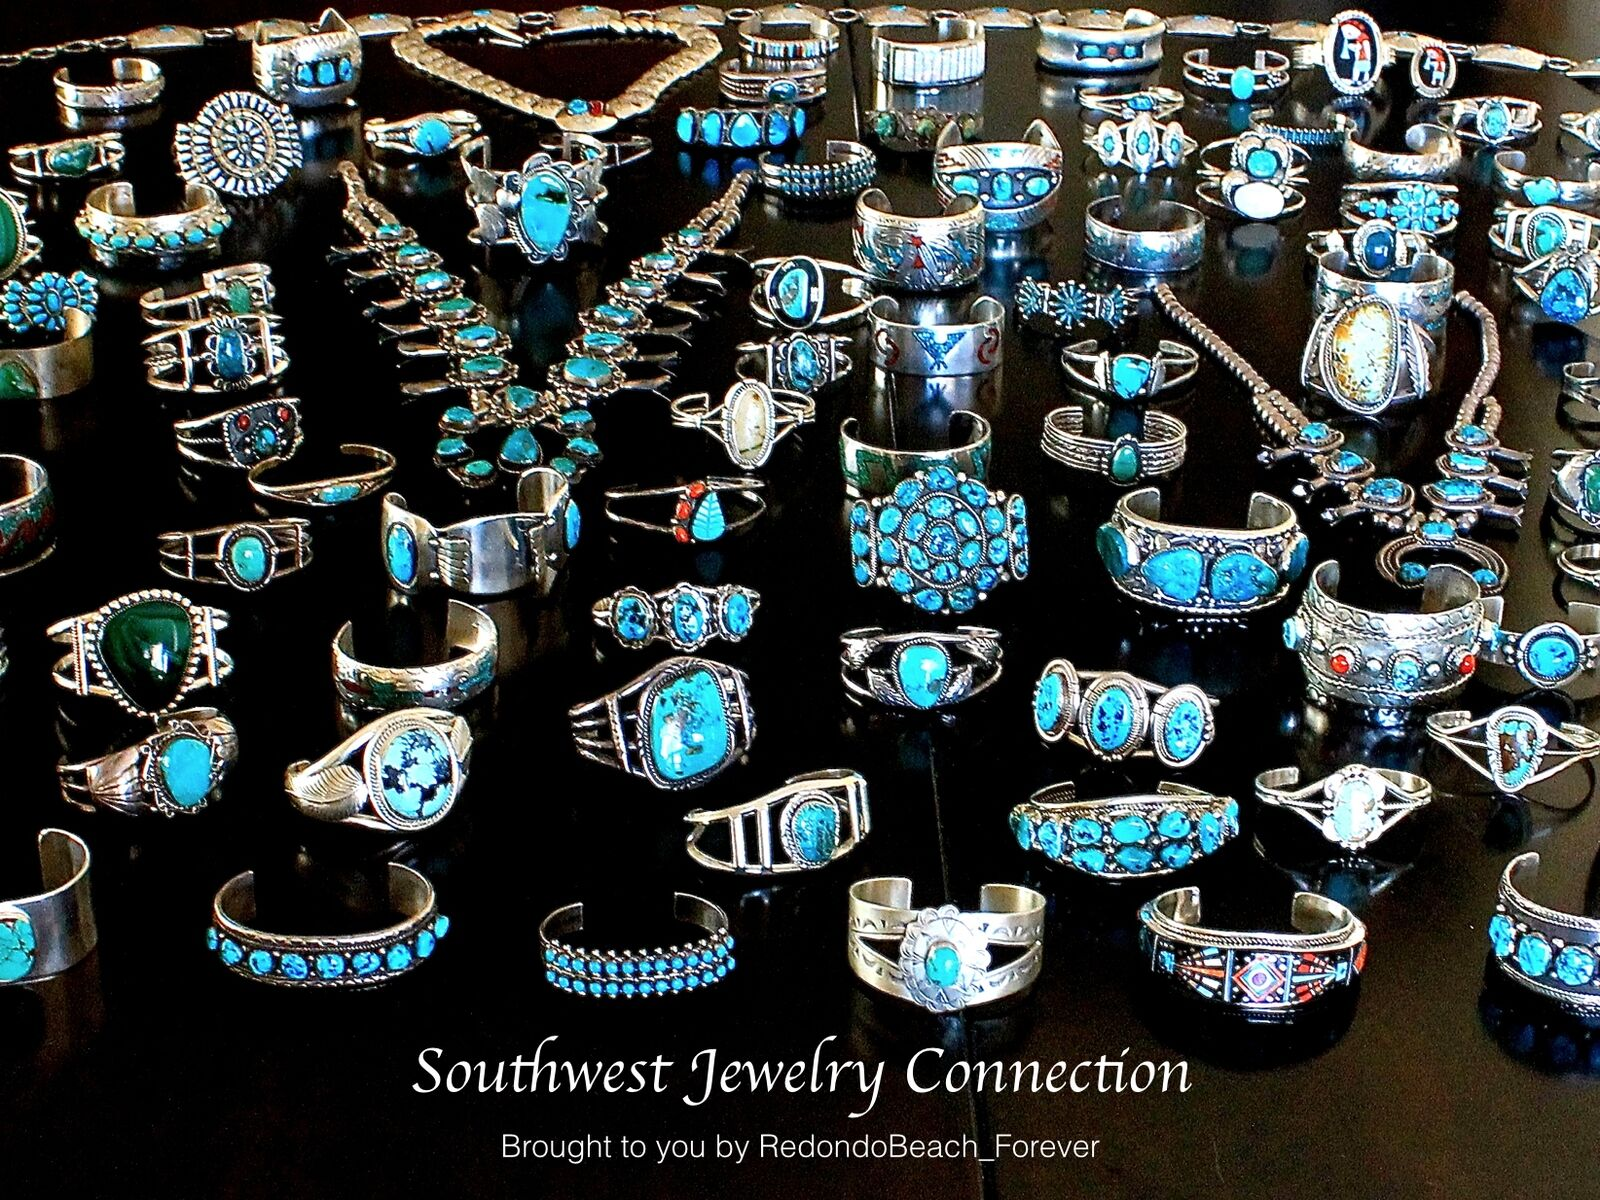 Southwest Jewelry Connection